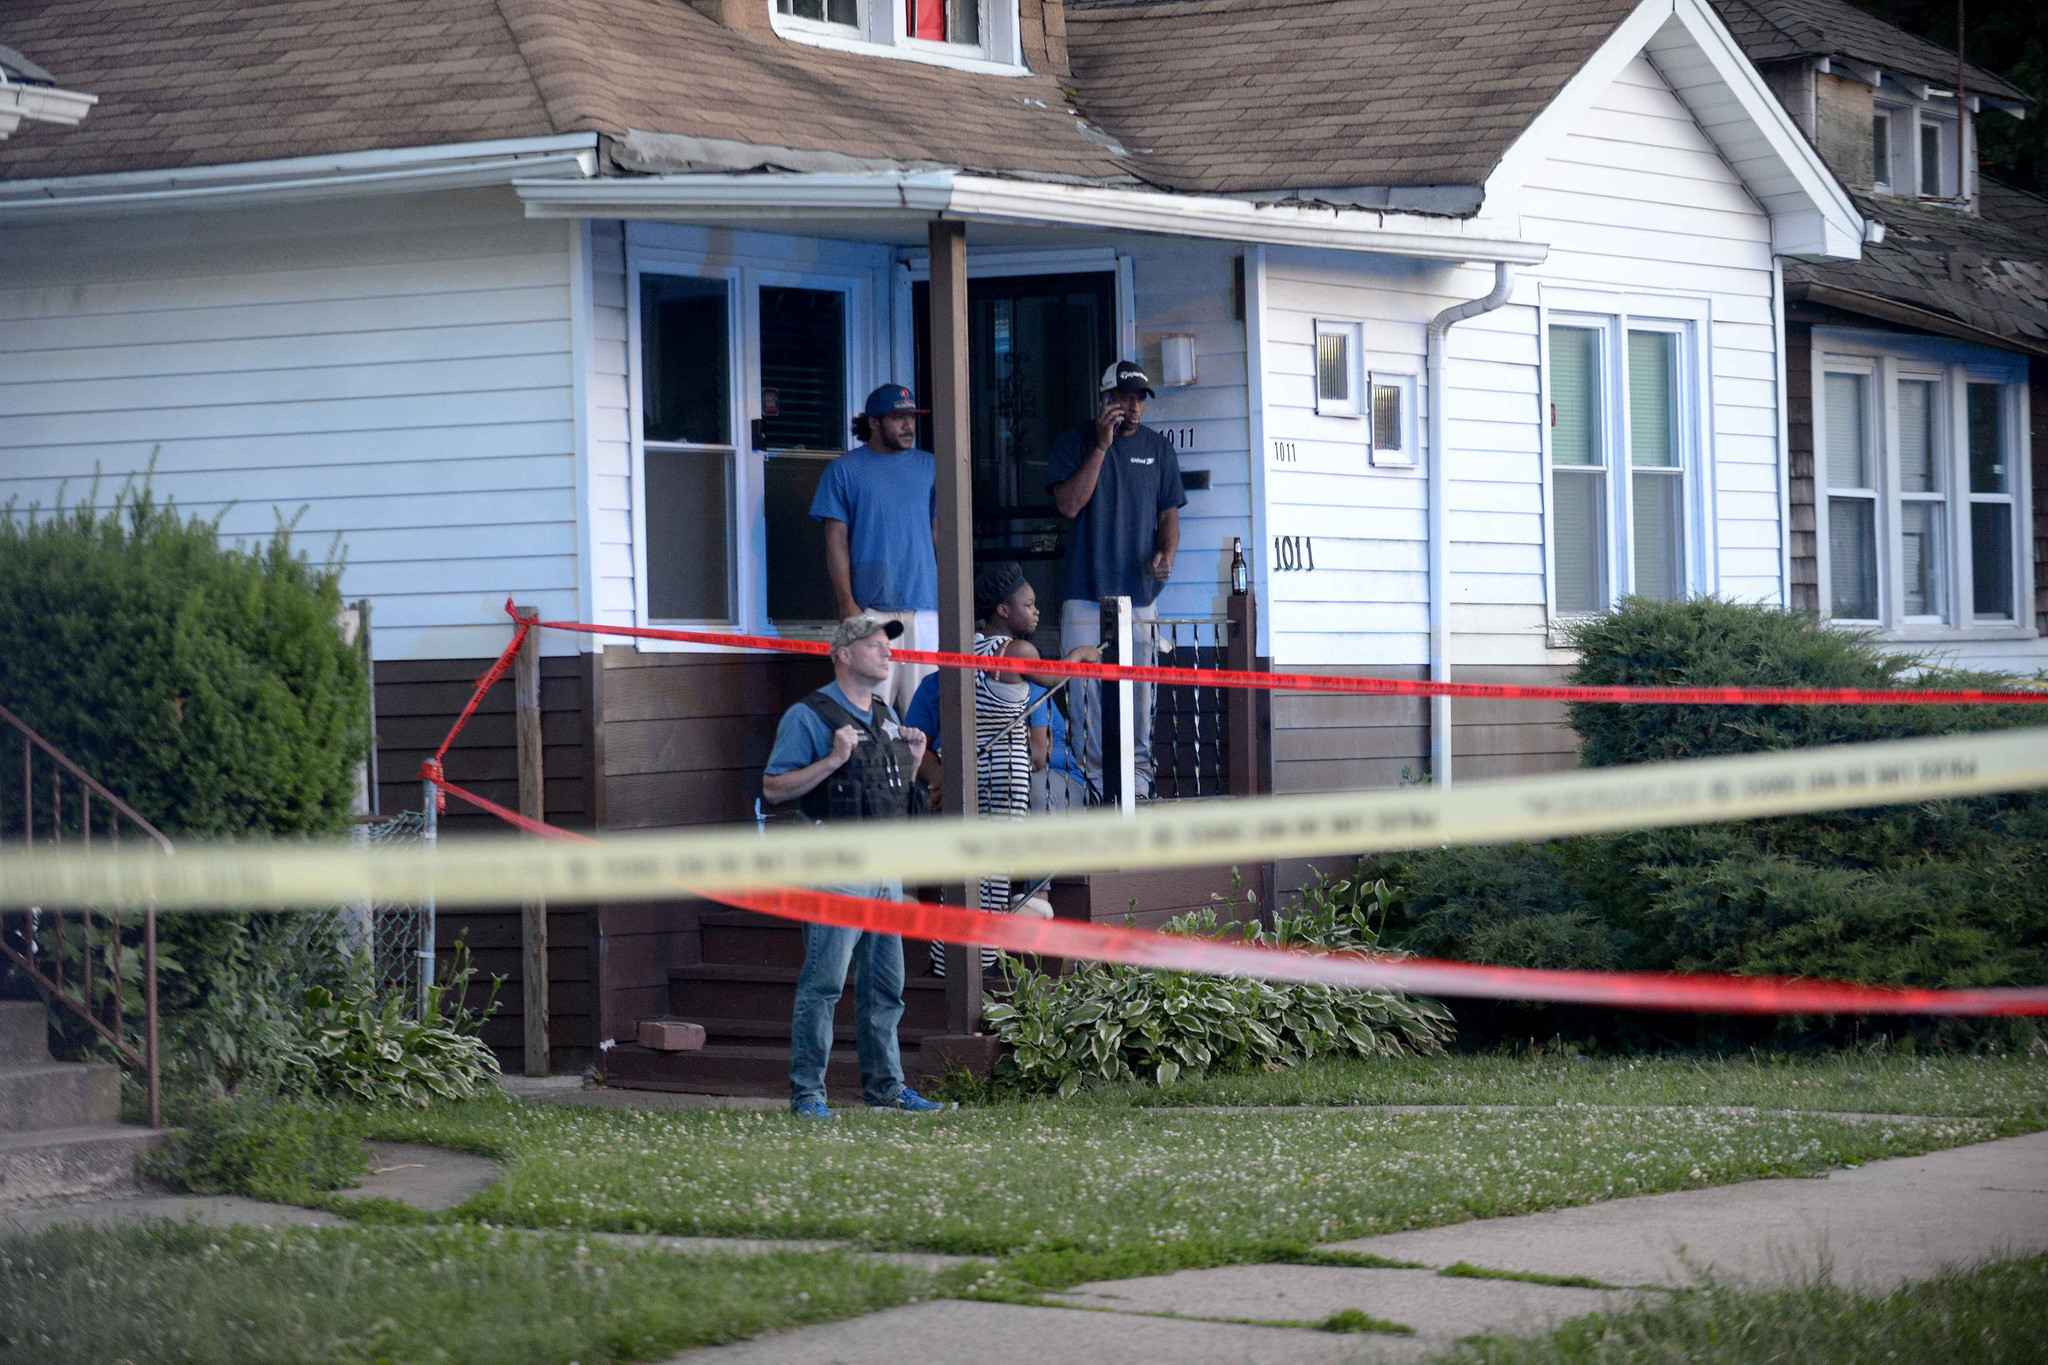 Boy 13 shot dead in backyard near Far South Side home: 'I couldn't even make it in time to see him'